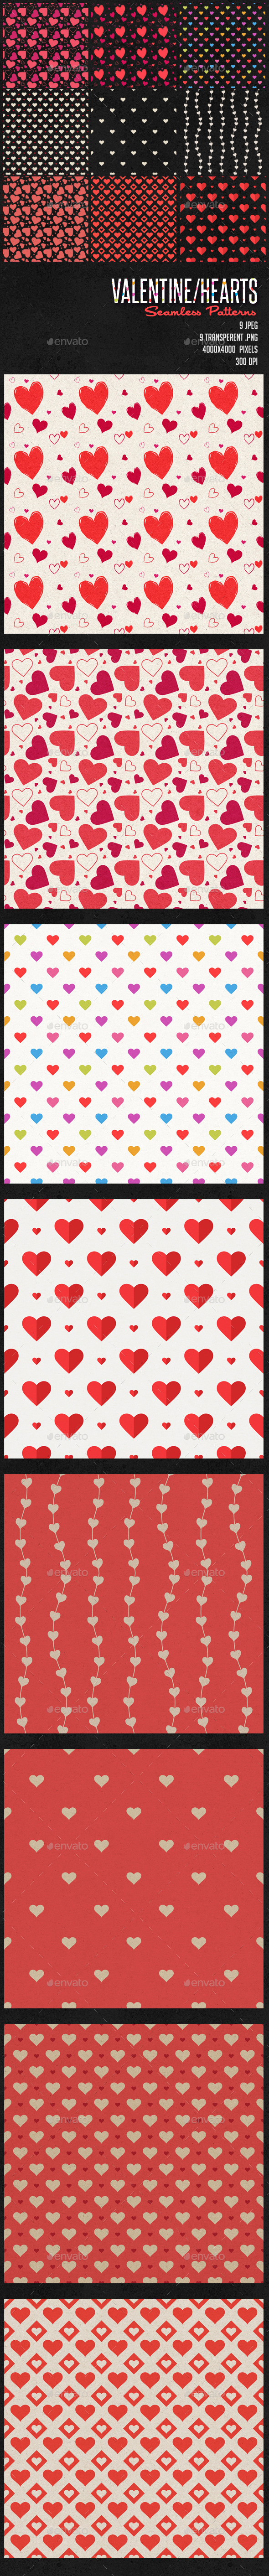 Valentines / Heart Patterns  - Patterns Backgrounds